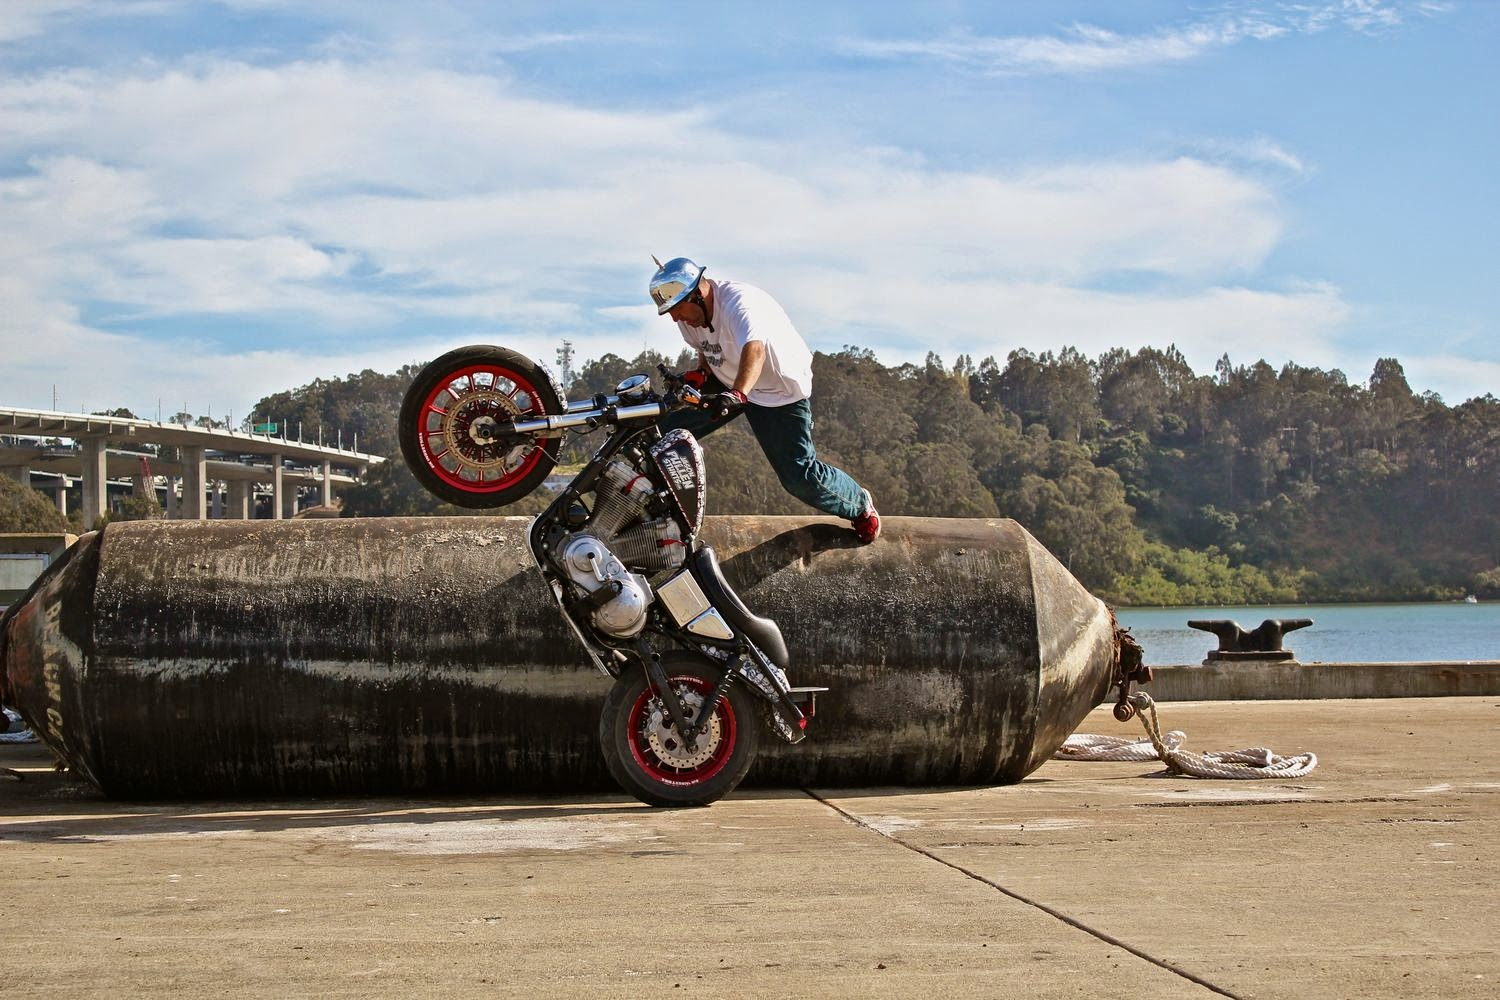 Jason Pullen Stunts